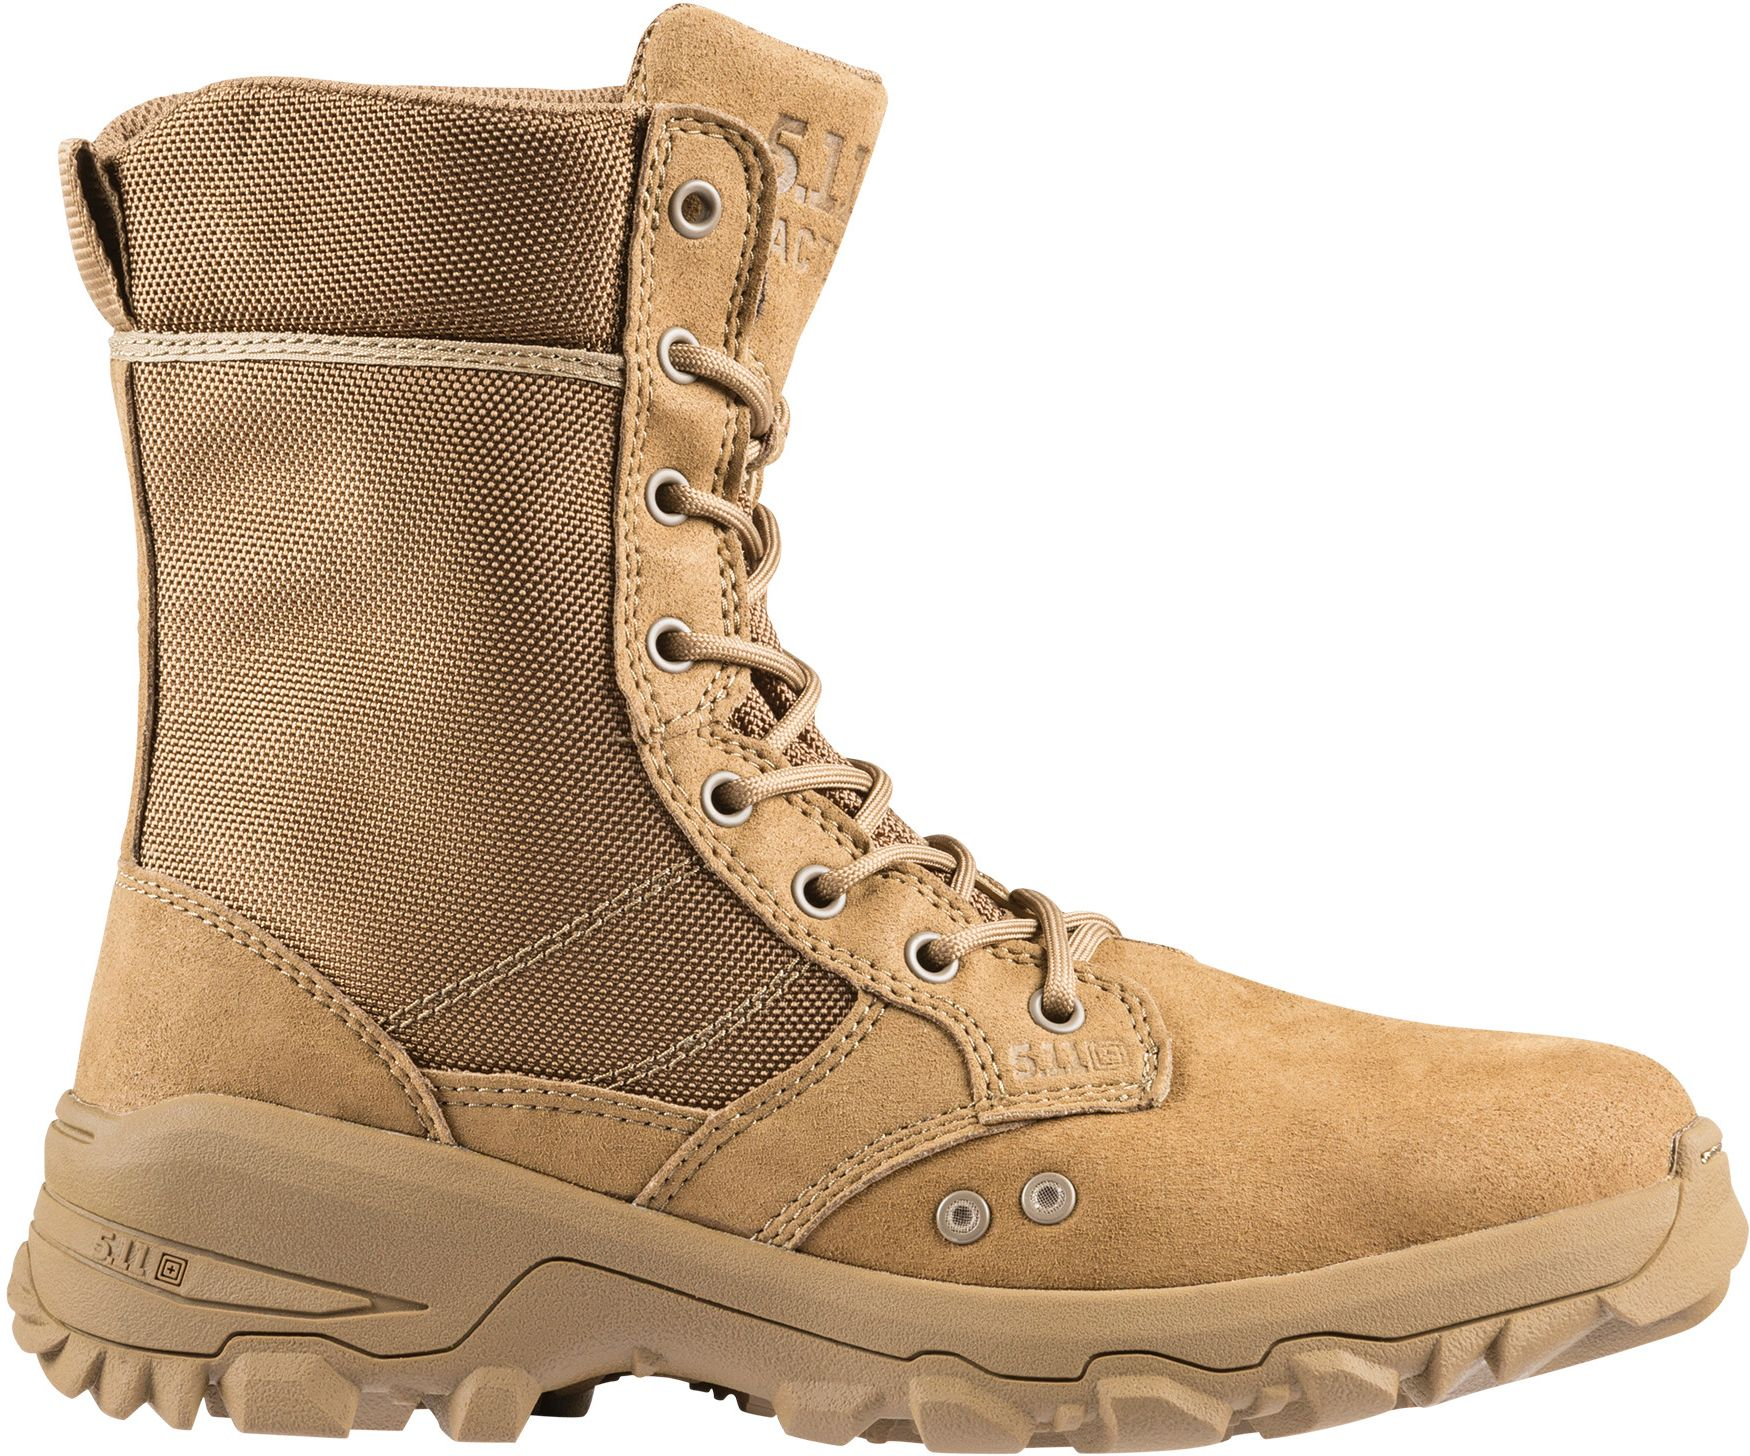 Product Image · 5.11 Tactical Men's Speed 3.0 Jungle Tactical Boots